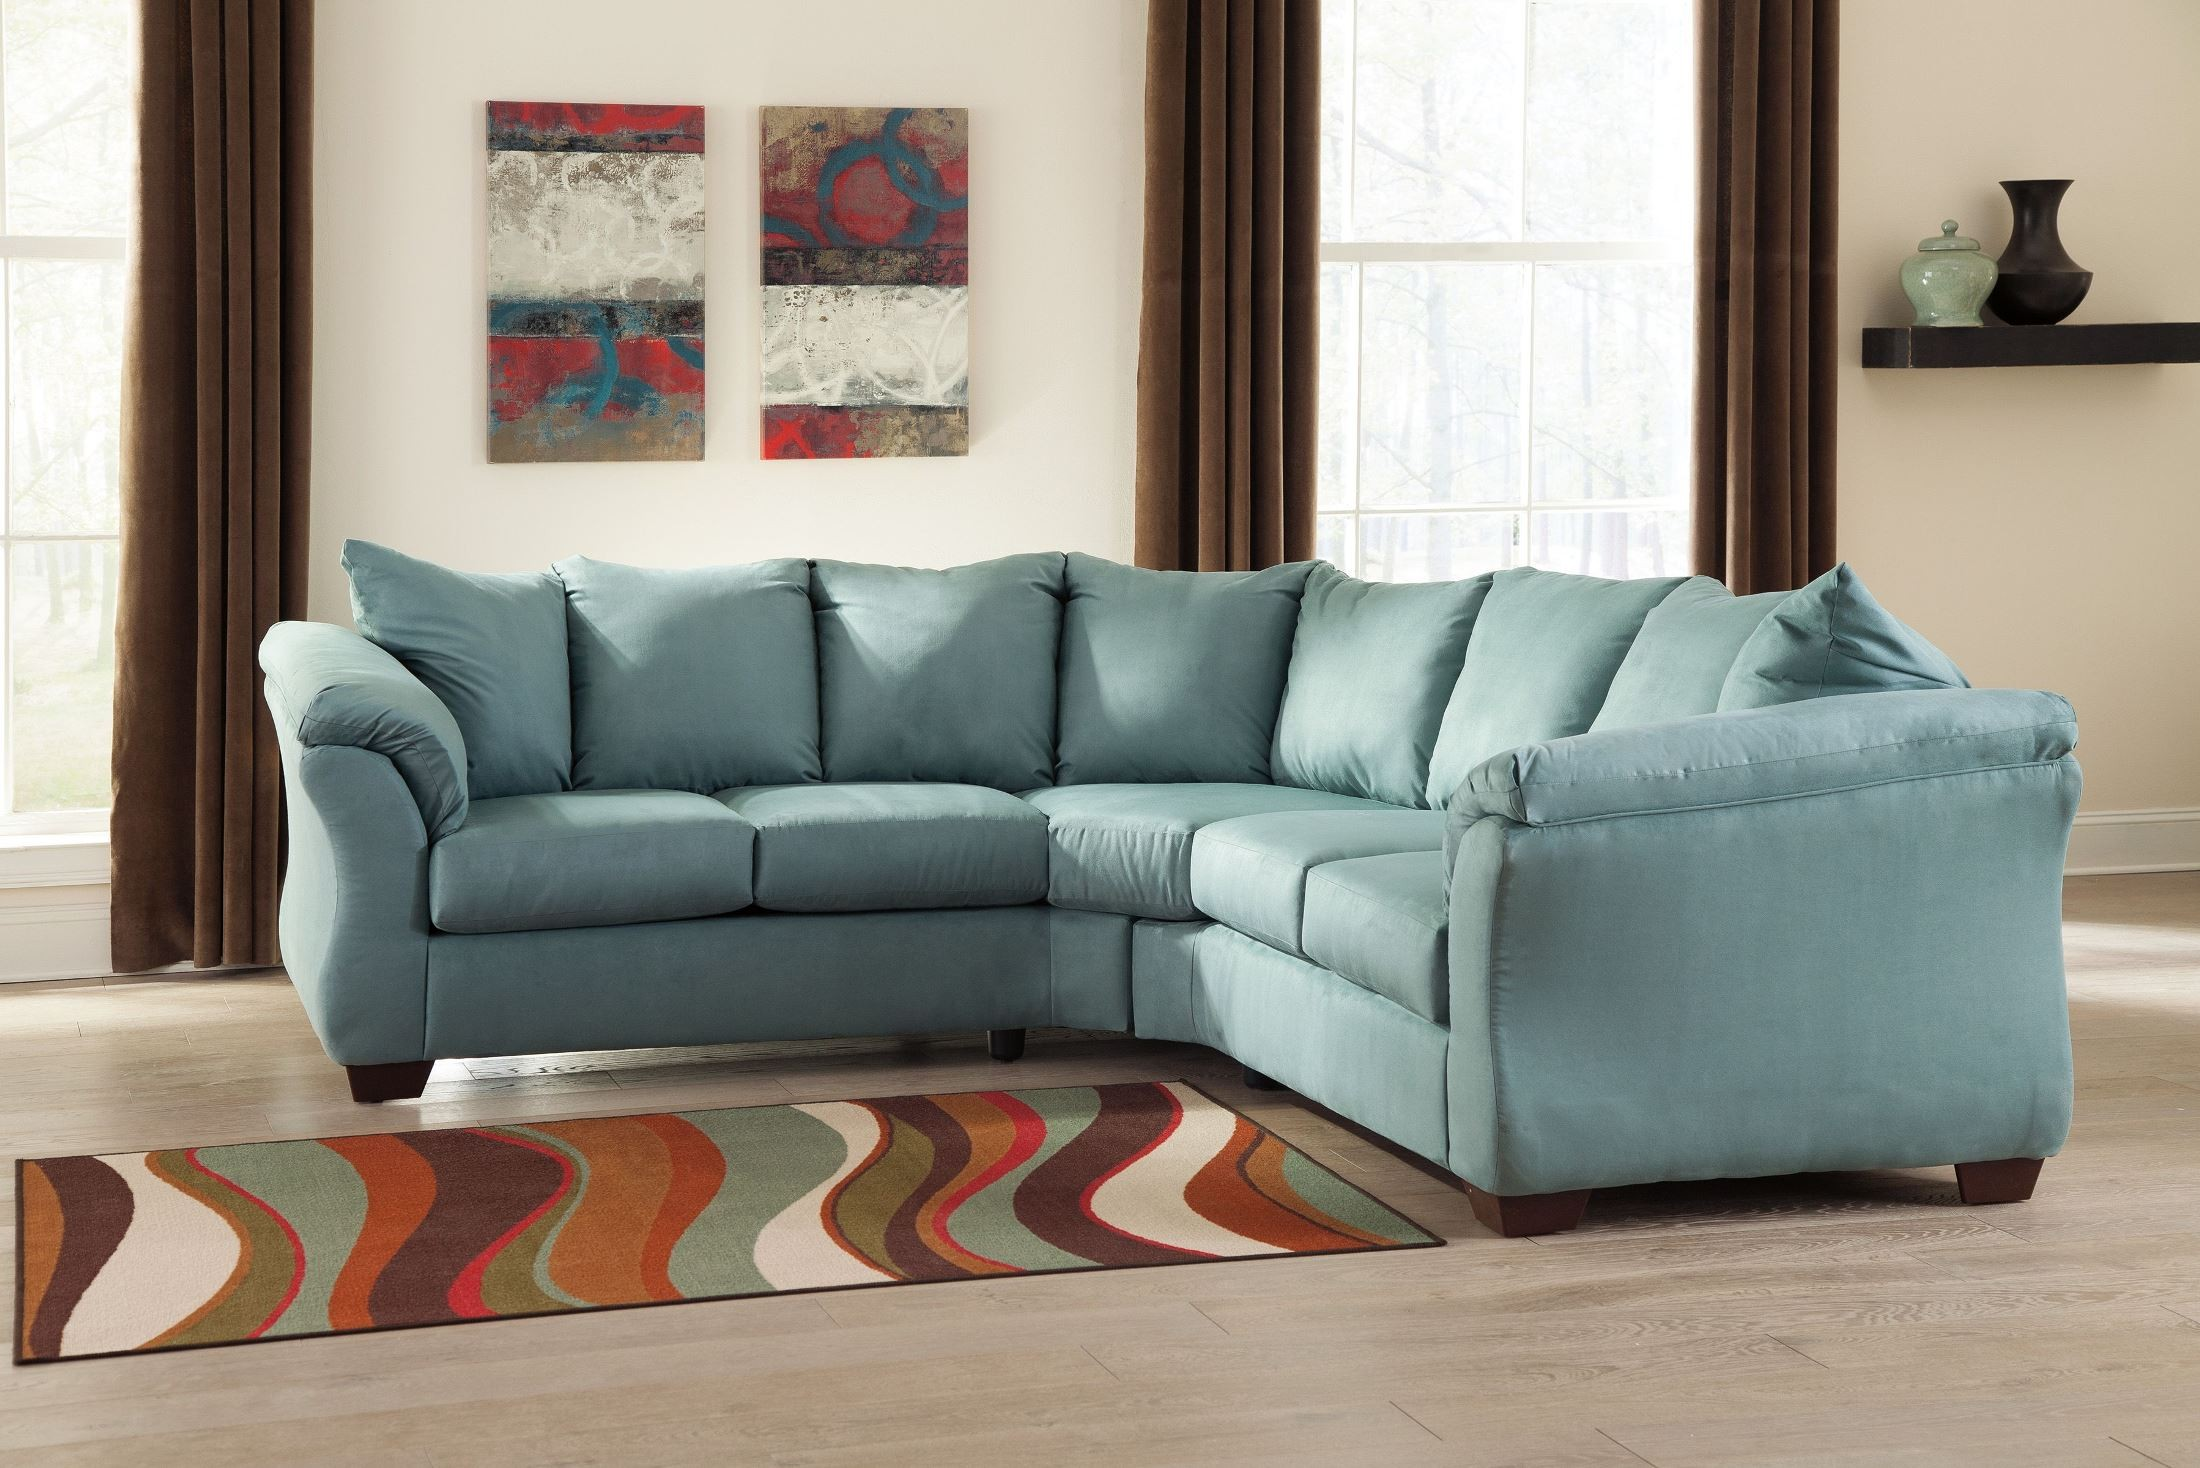 Darcy Sofa Ashley Review Darcy Sky Sectional From Ashley (75006-55-56) | Coleman